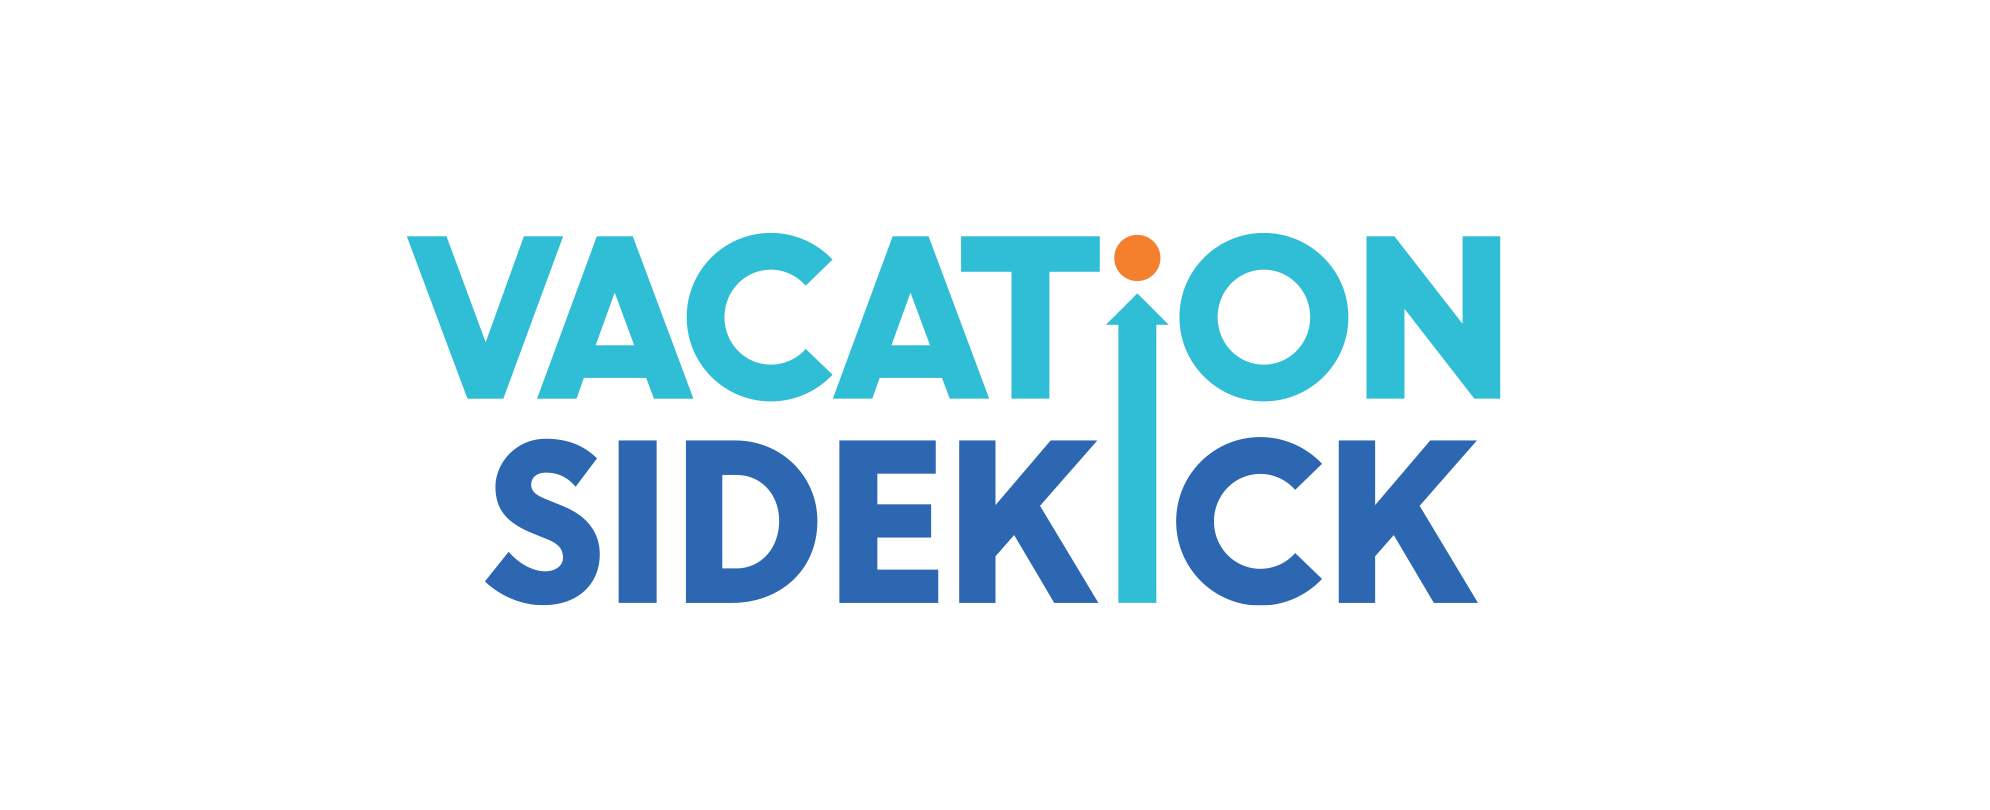 Margaritaville Vacation Club Vacation Sidekick logo.